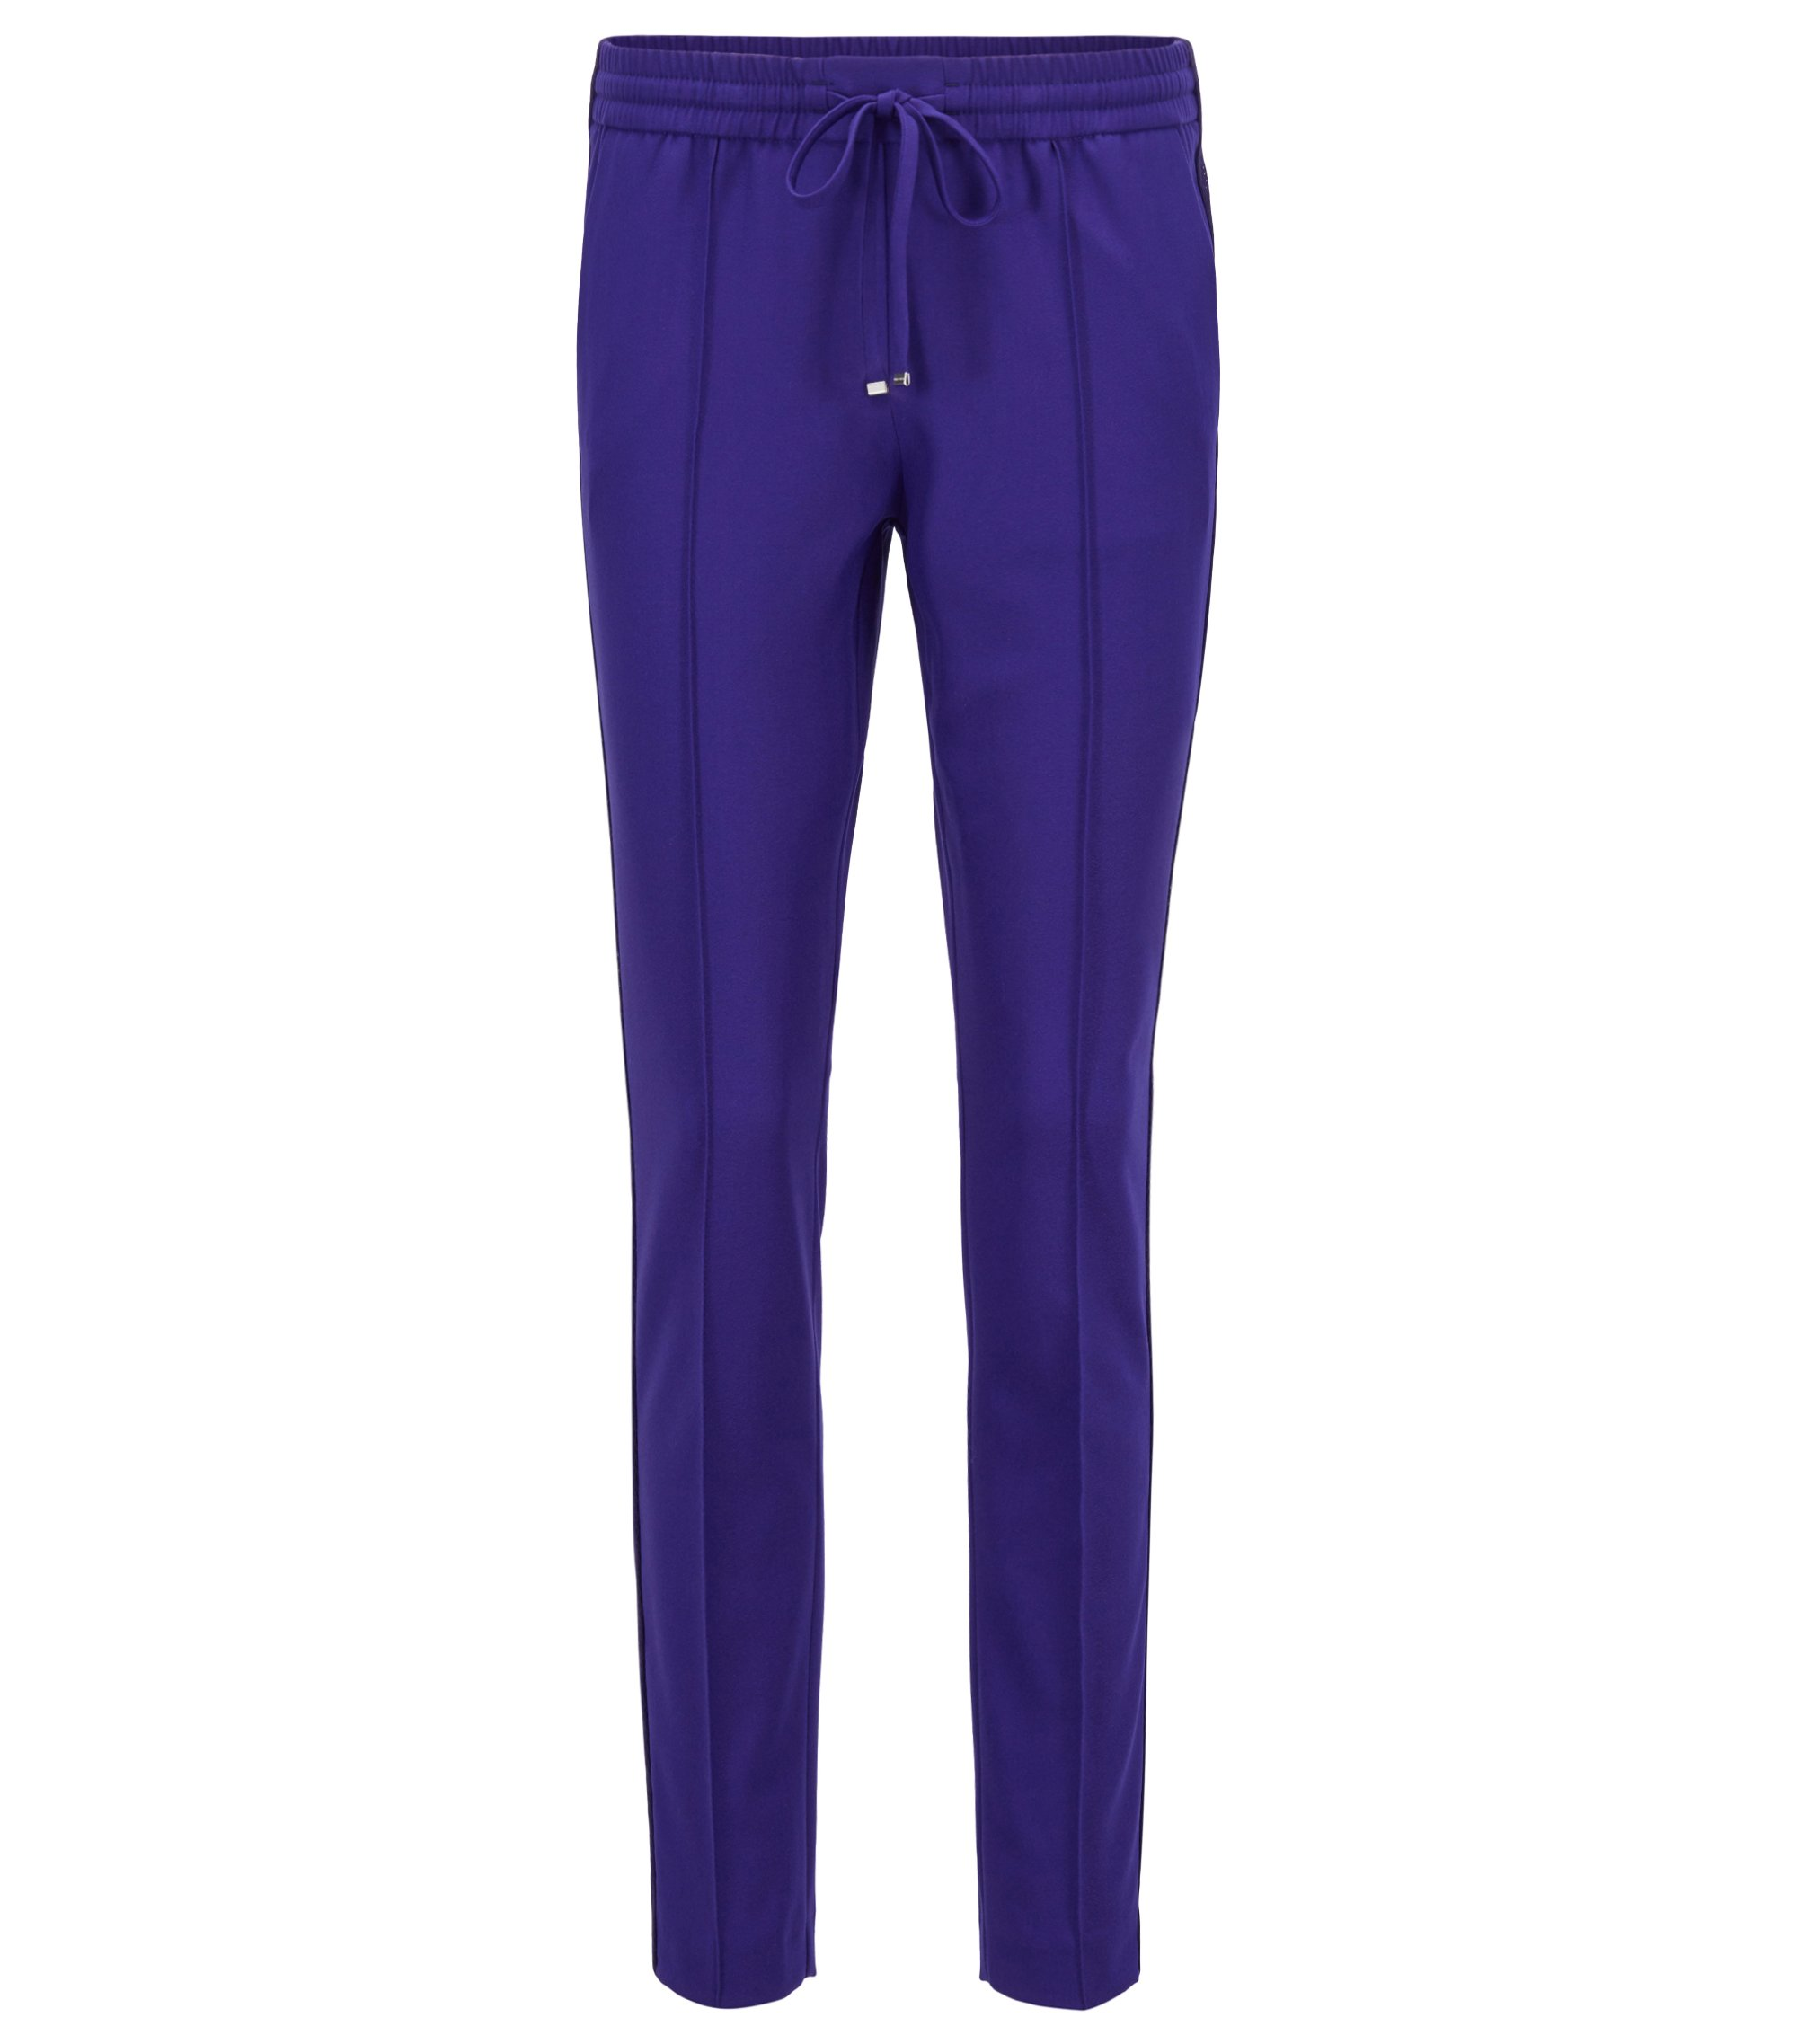 Relaxed-Fit Hose aus Stretch-Gewebe in Cropped-Länge, Flieder